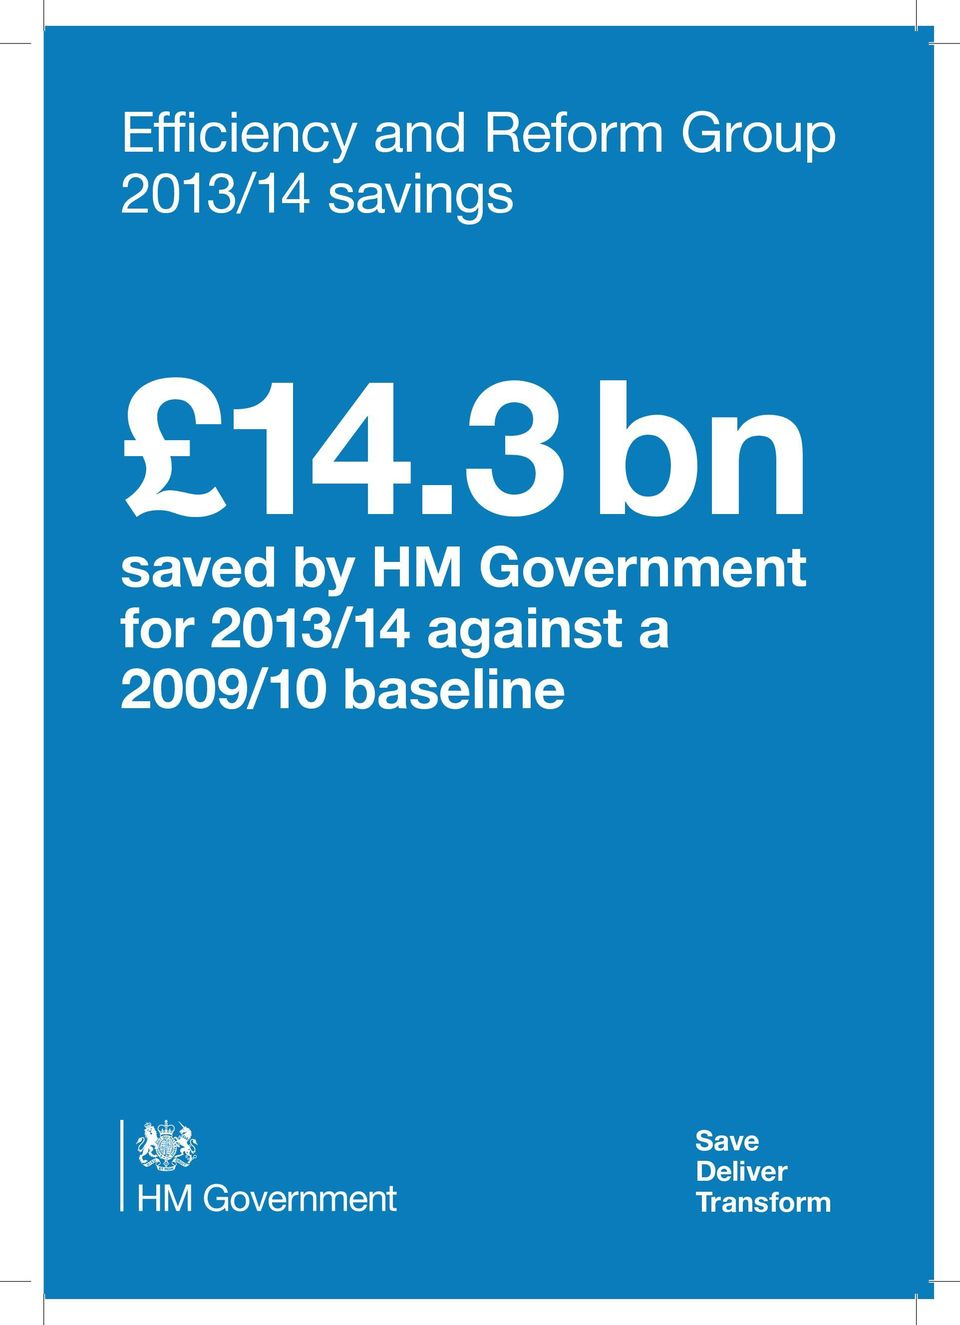 3 bn saved by HM Government for